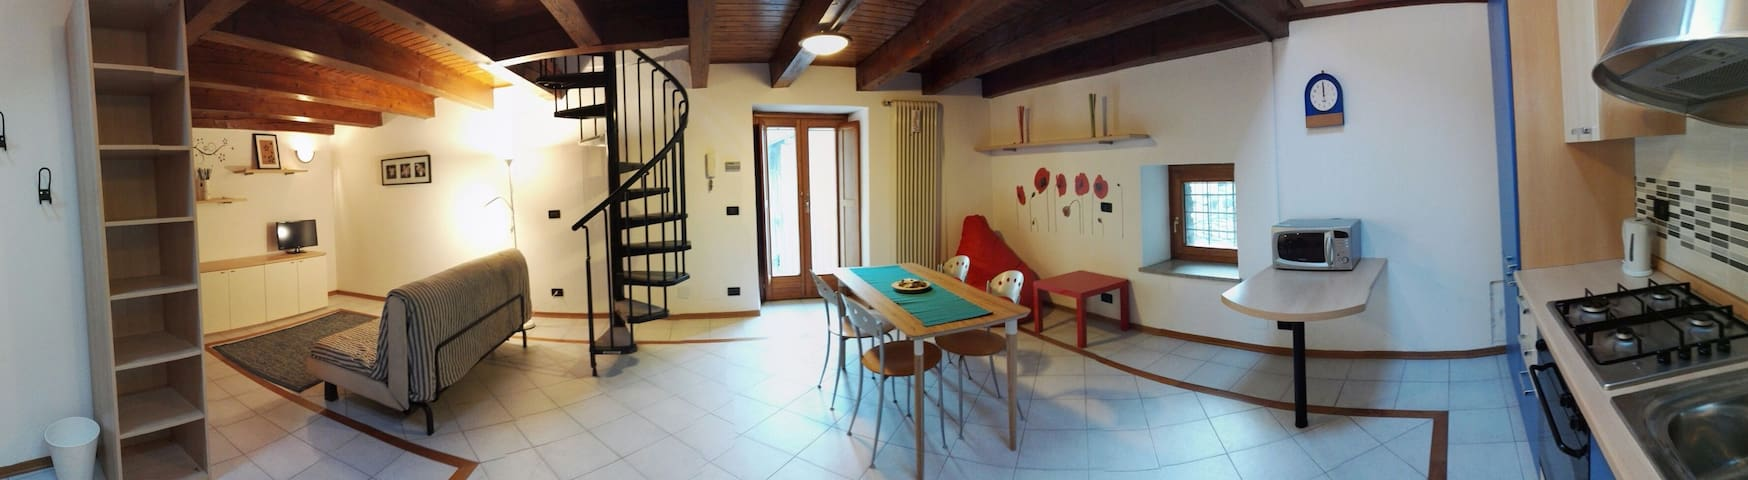 "Appartamento ""La Tor"" a Donnas - Donnas, Valle d'Aosta, IT - Daire"